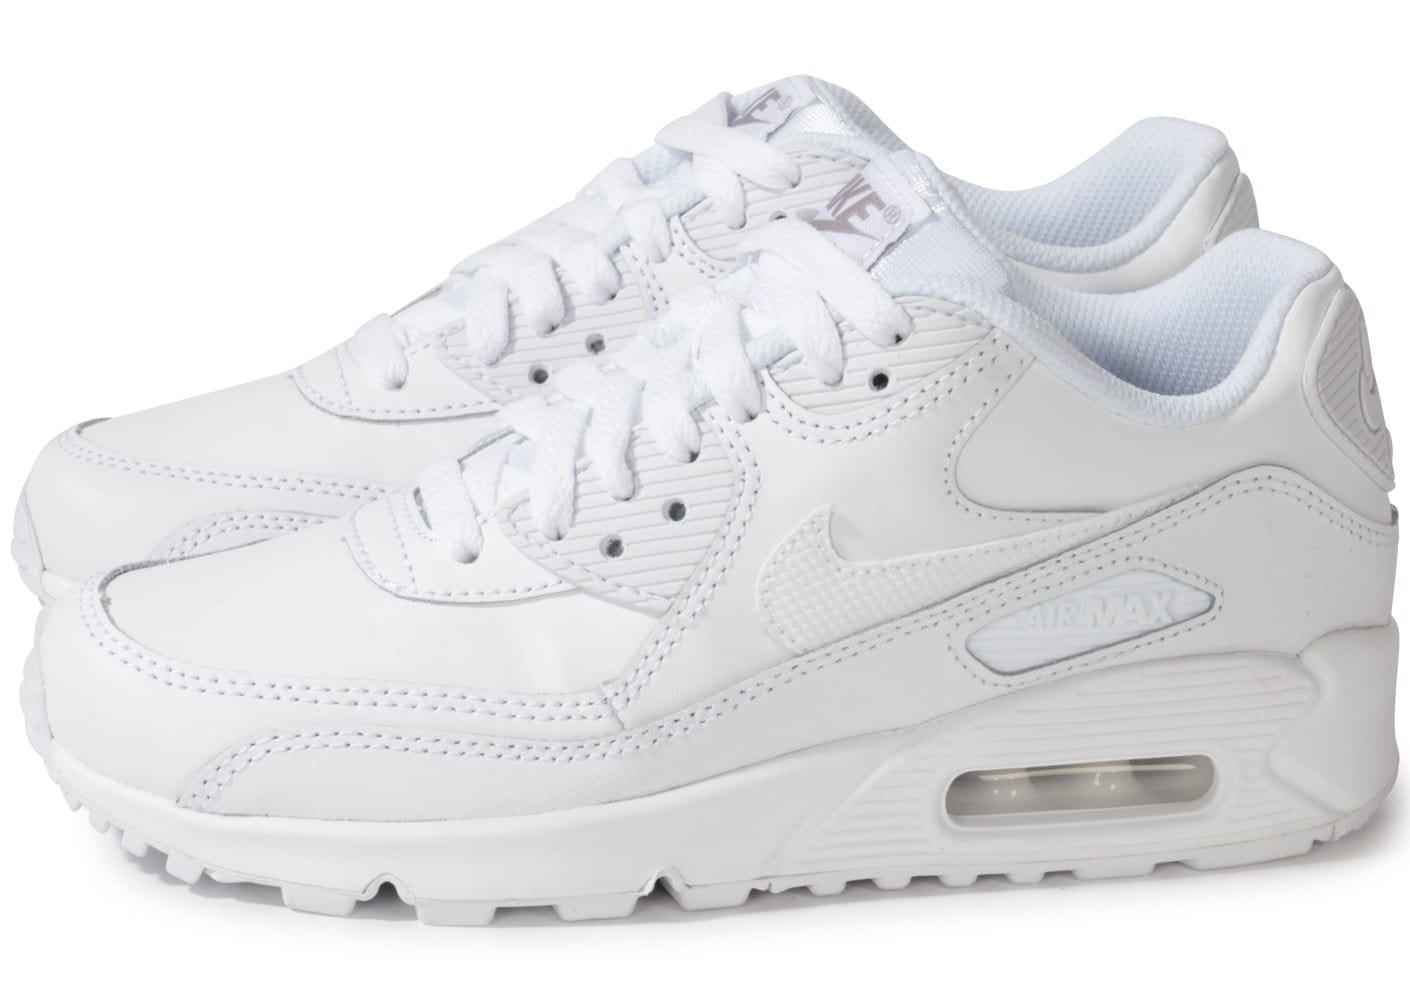 nike air max 90 blanche femme. Black Bedroom Furniture Sets. Home Design Ideas